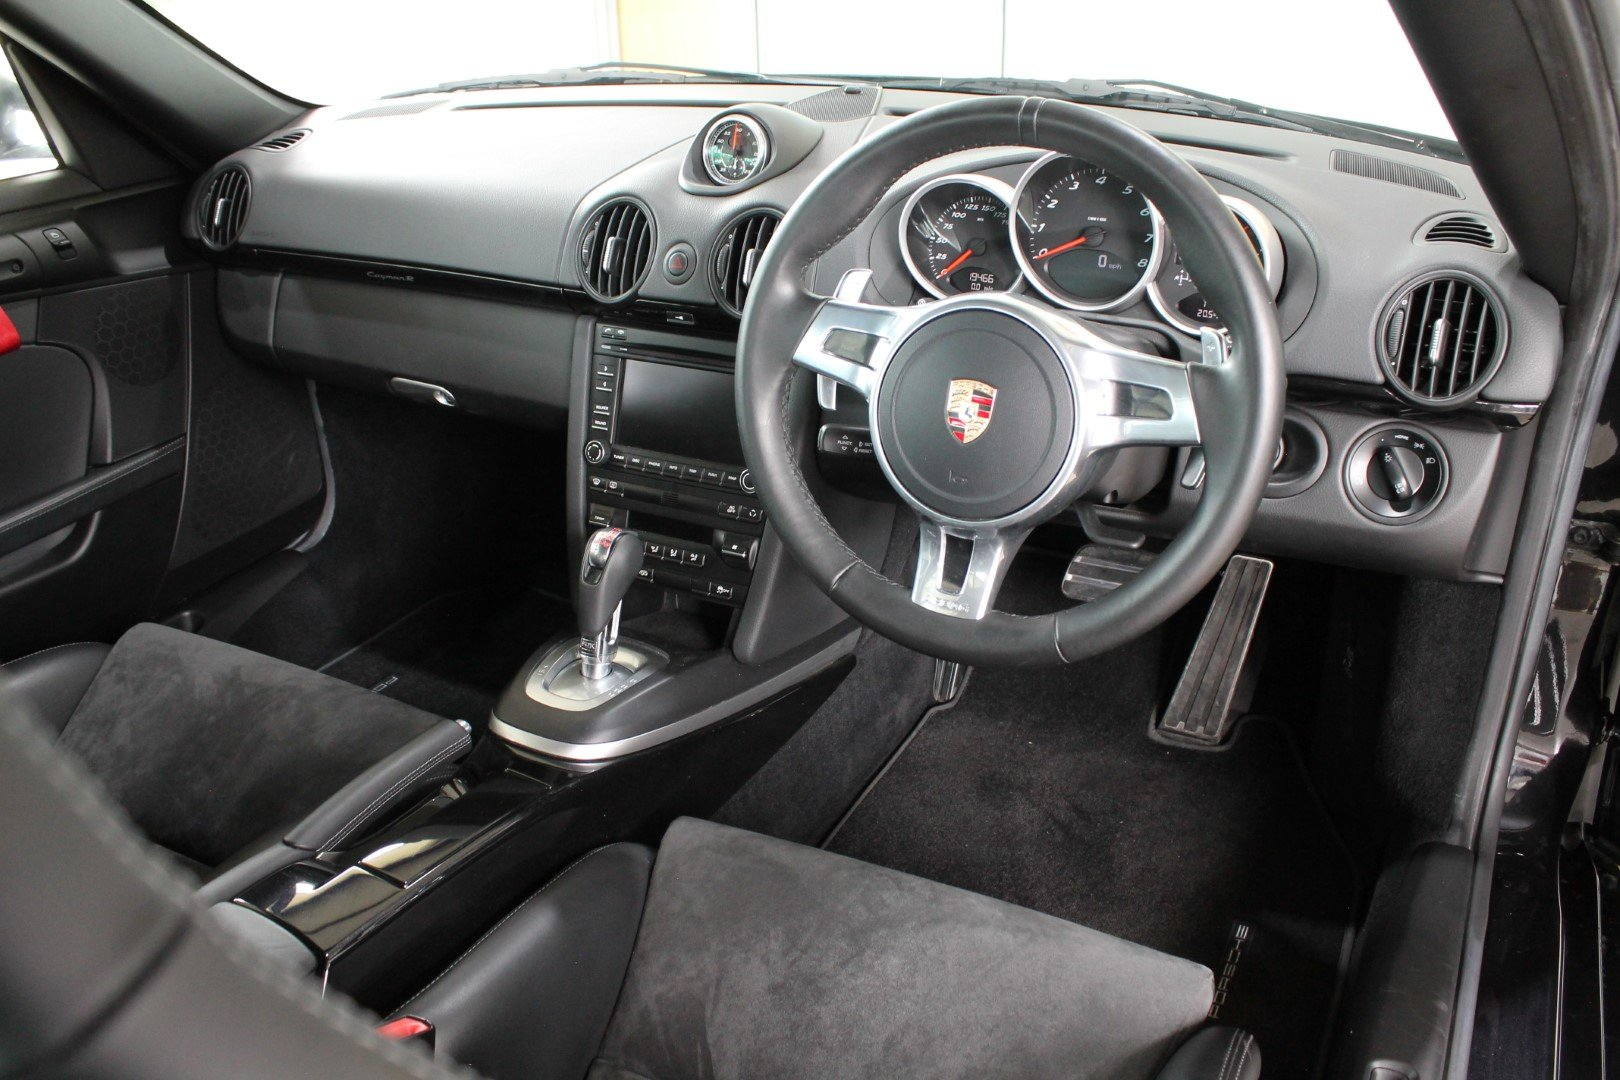 2011 Porsche Cayman (987) 3.4 R PDK For Sale (picture 5 of 6)